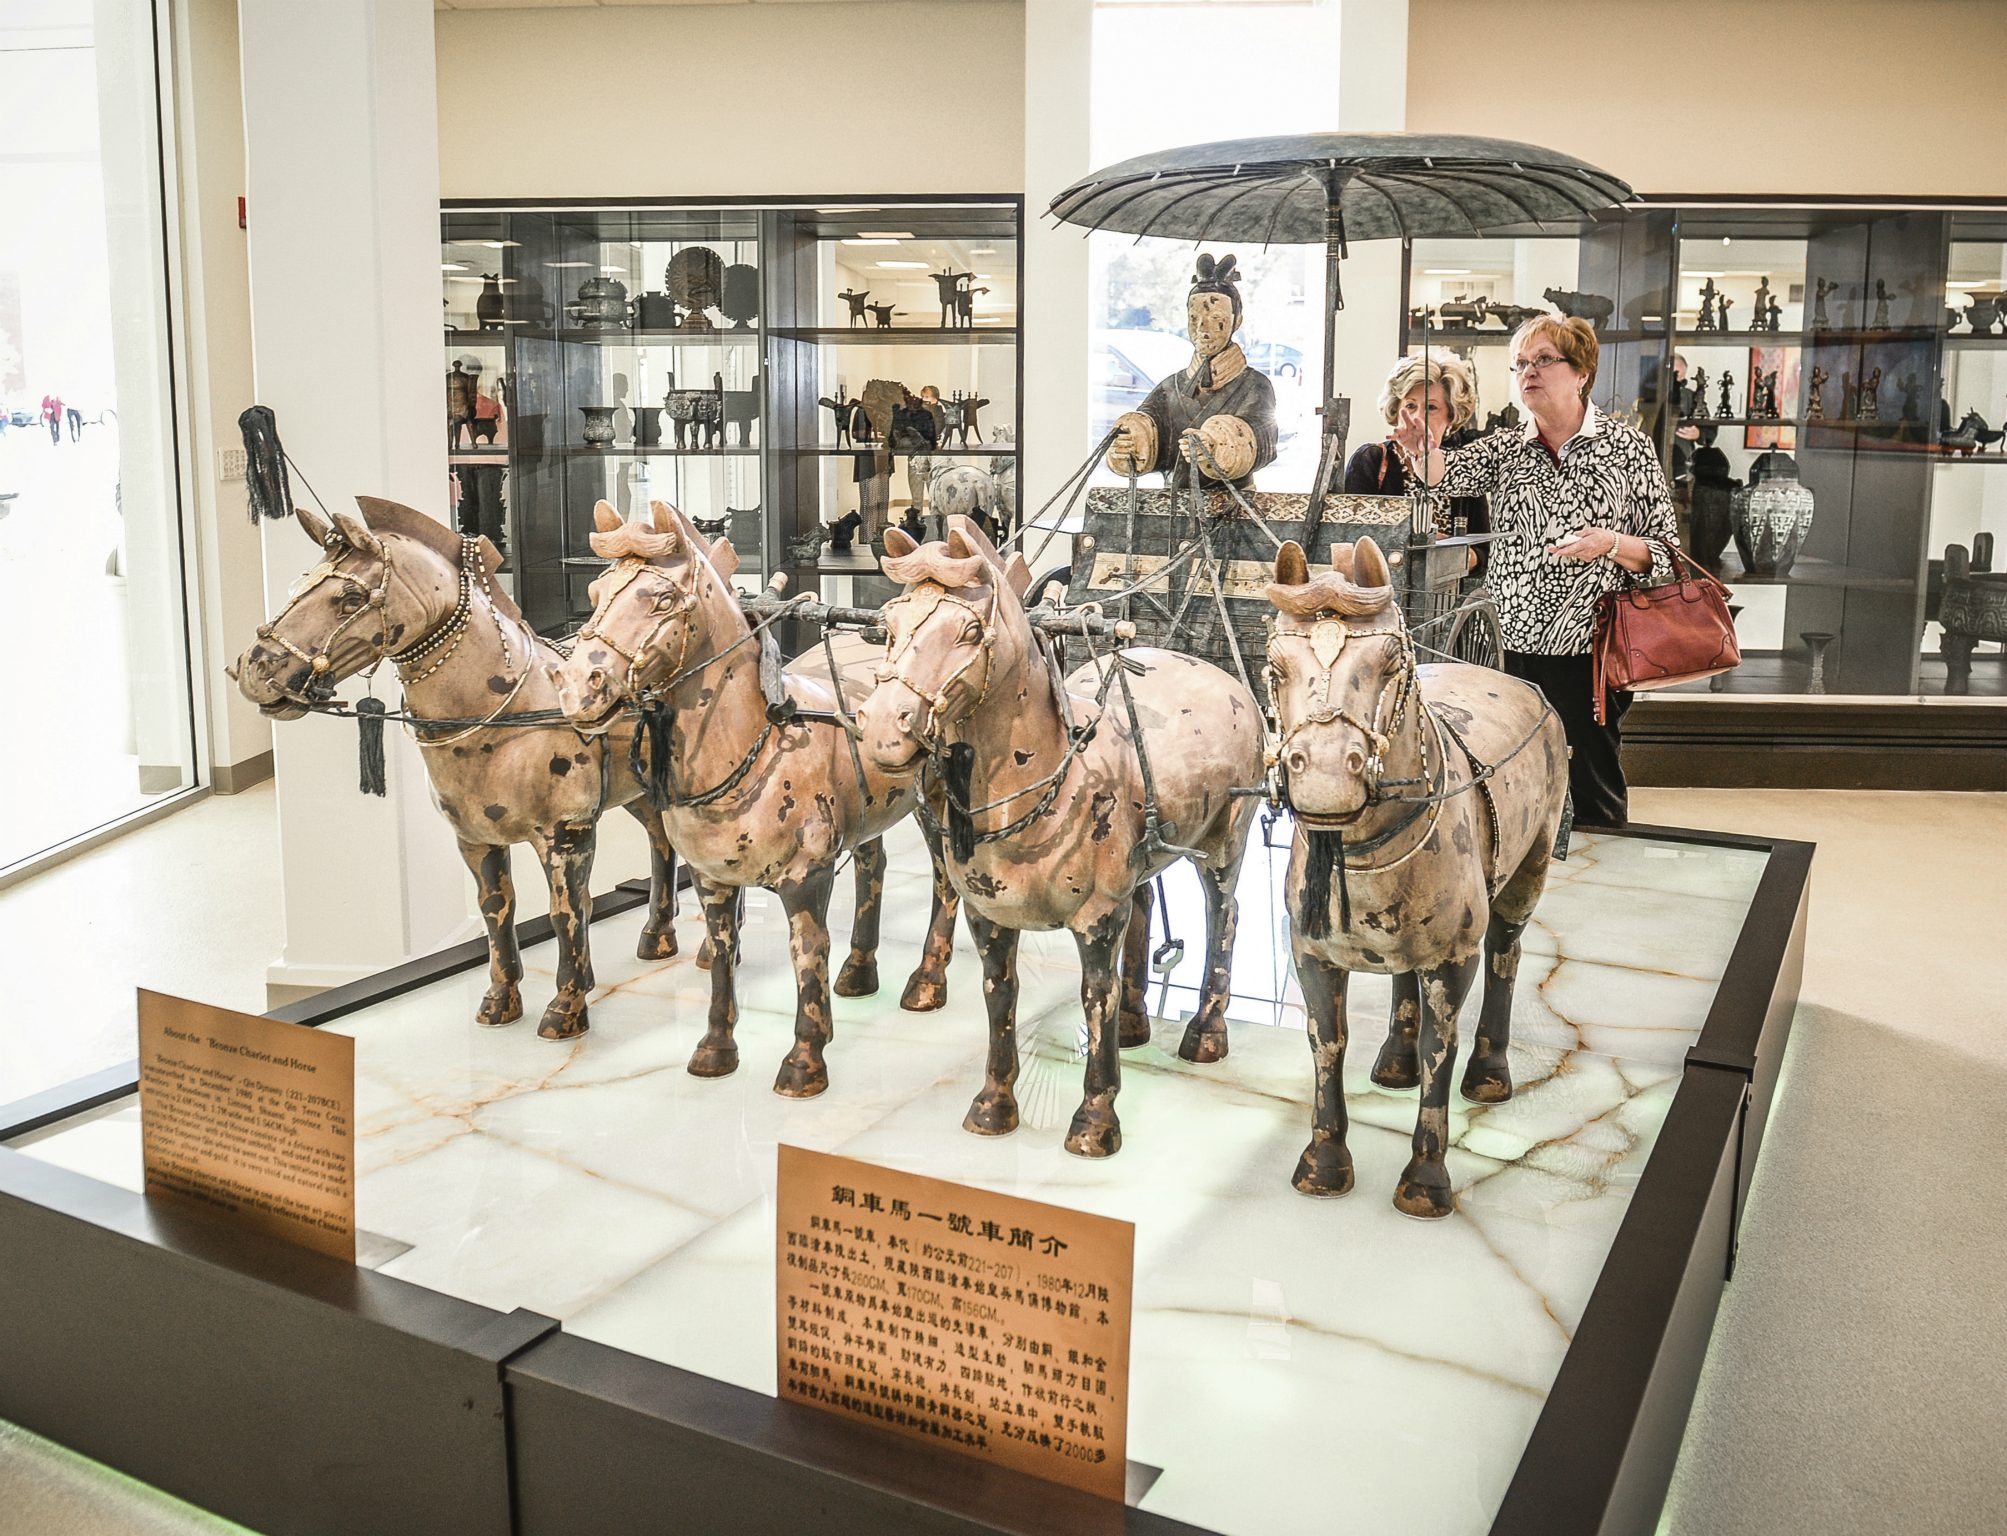 Visitors admire the Horses and Chariot replica on display in the Huo Bau Zhu Gallery.